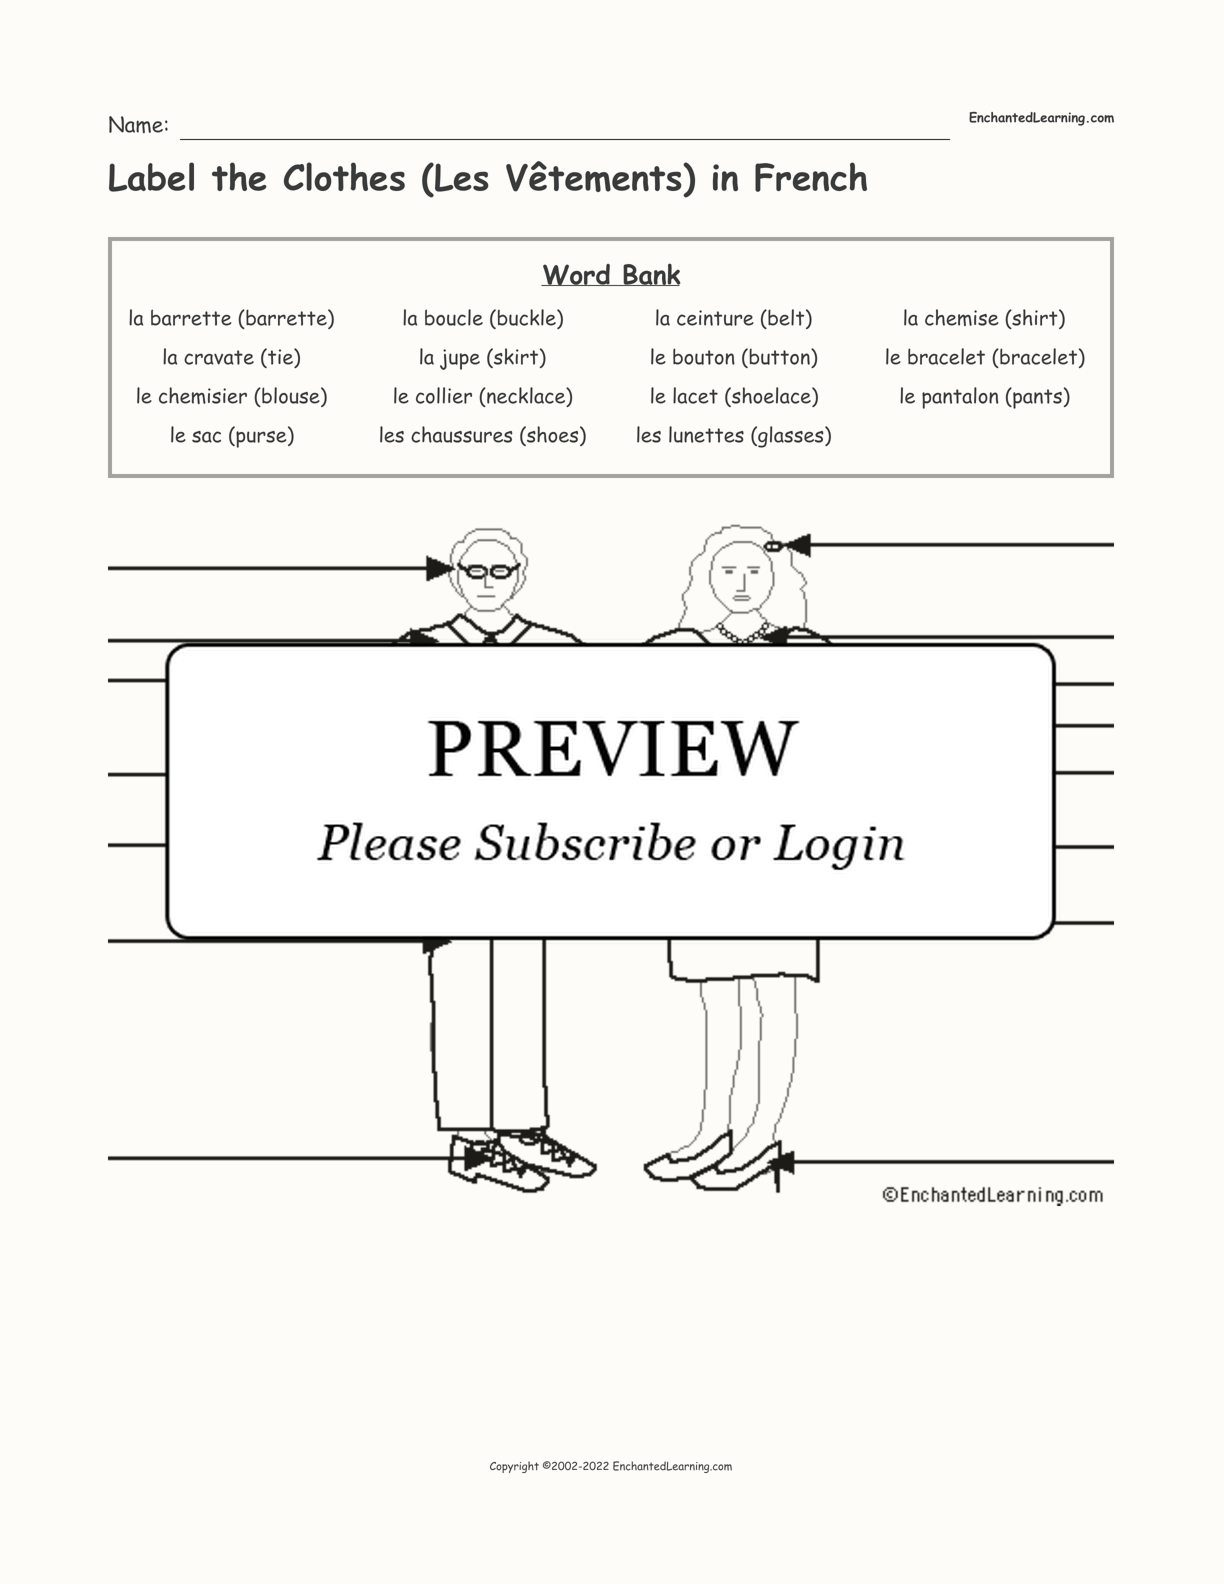 Label the Clothes (Les Vêtements) in French interactive worksheet page 1